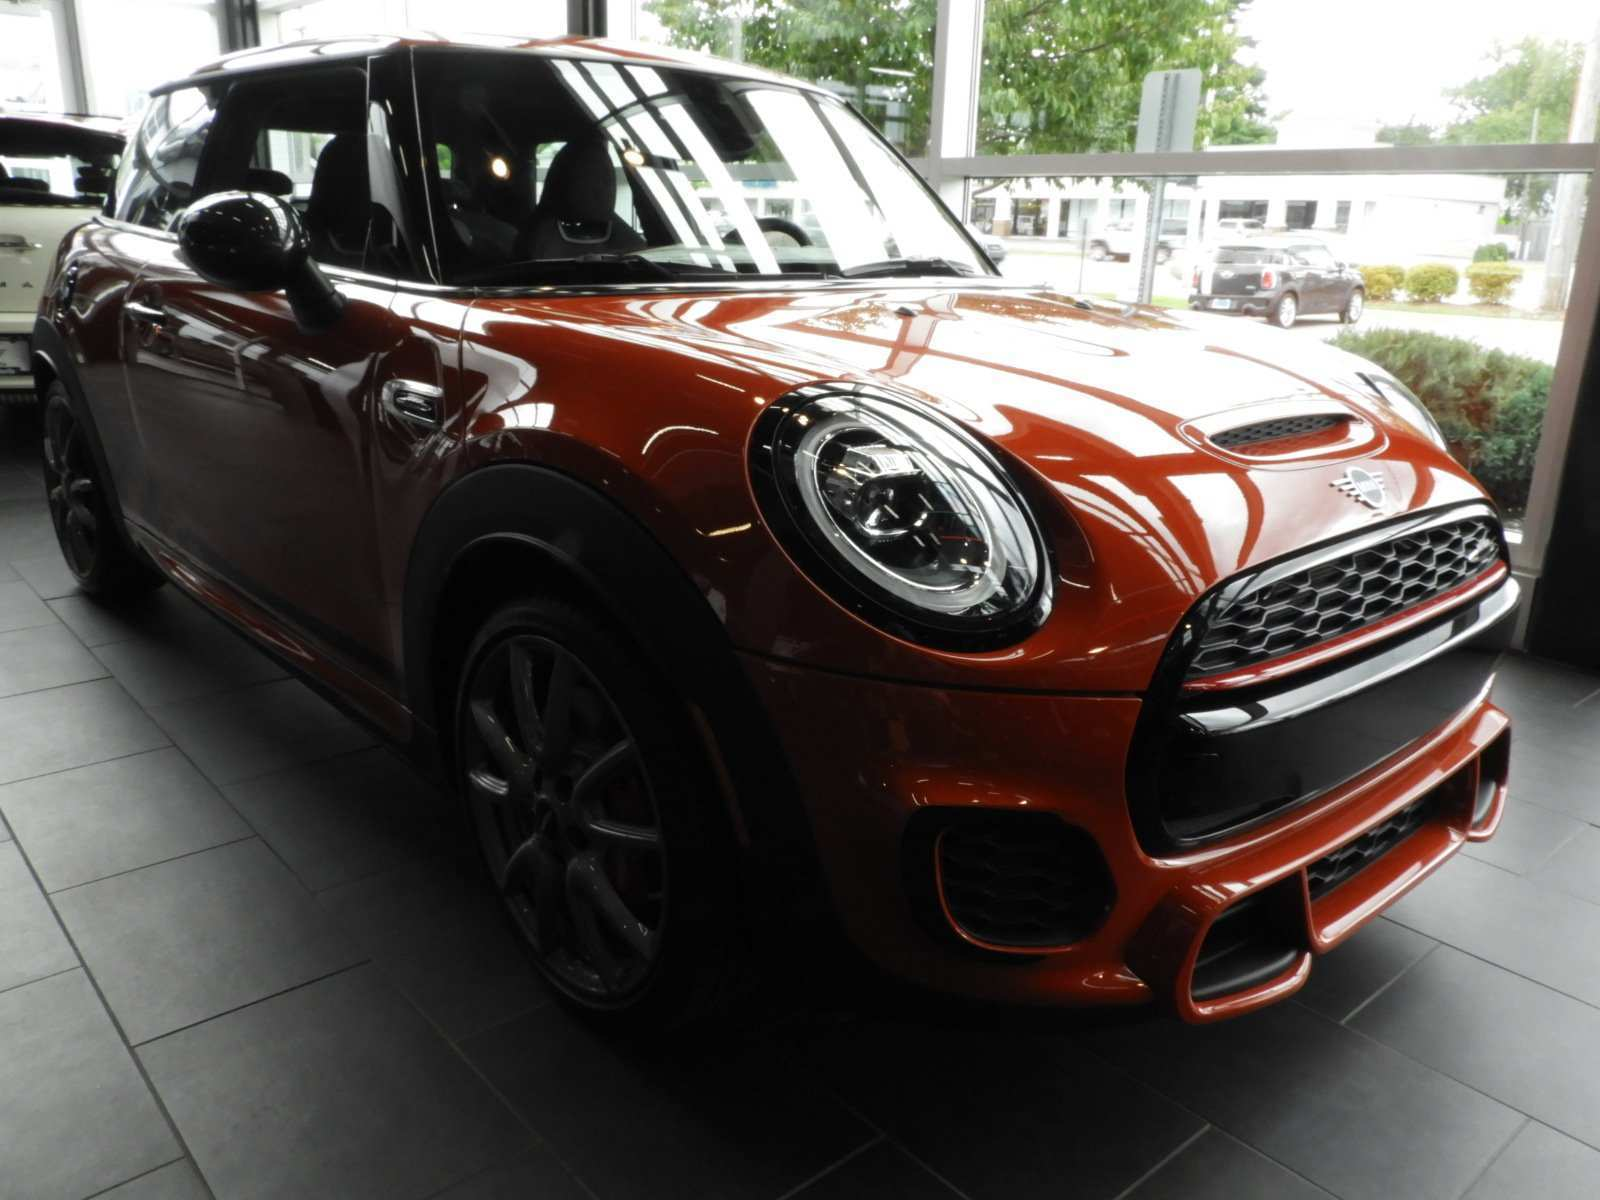 34 All New 2019 Mini Cooper Jcw Engine for 2019 Mini Cooper Jcw